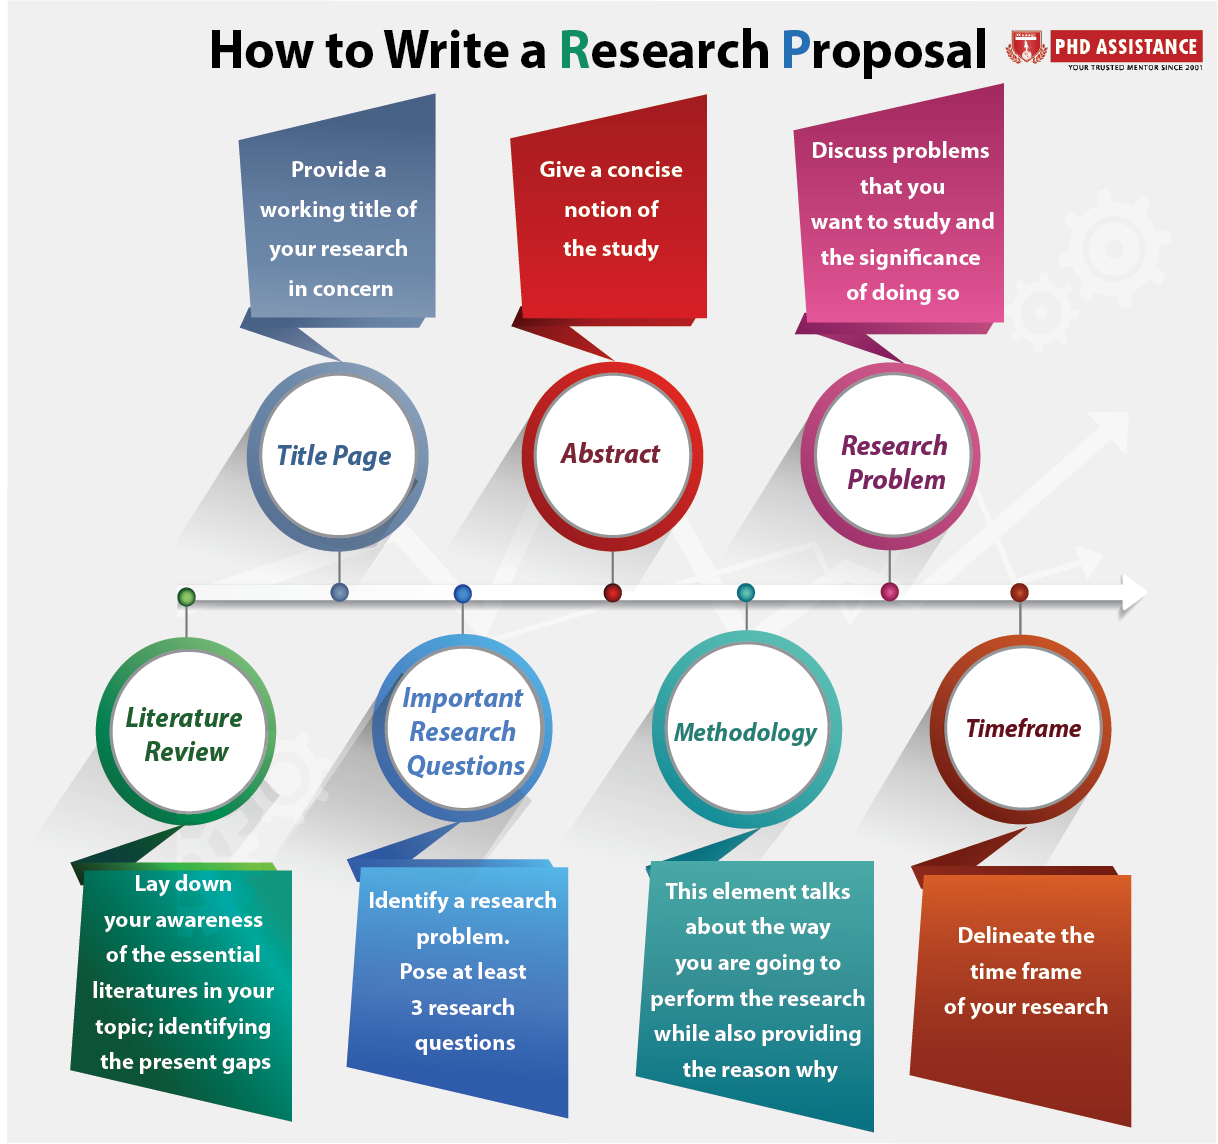 How To Write A Phd Research Proposal On Business Management In 2020 Research Proposal Writing A Research Proposal Essay Writing Skills